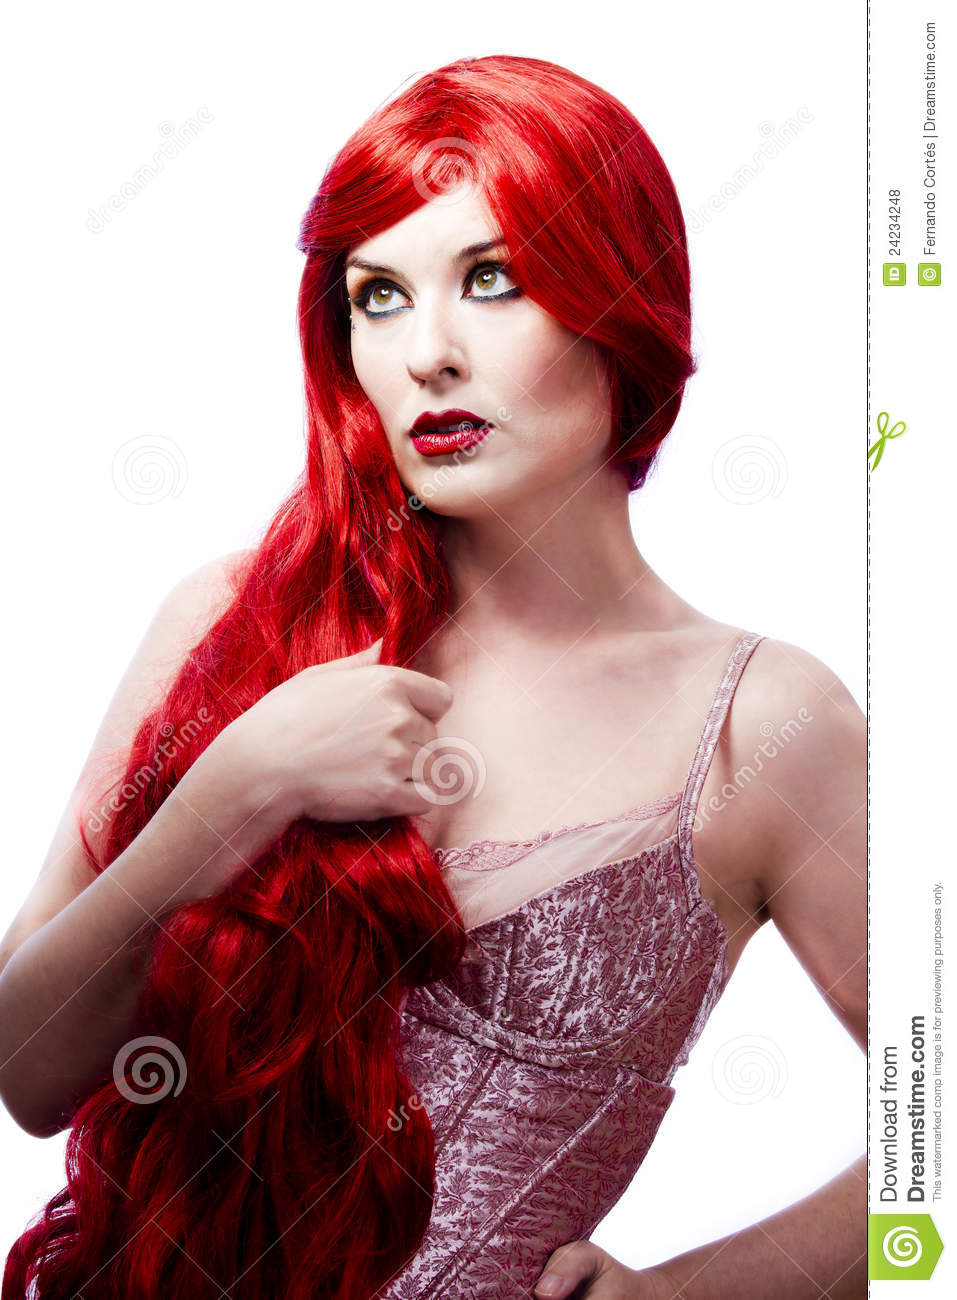 Wavy Red Hair Woman Fashion Girl Portrait Stock Photo Image 24234248